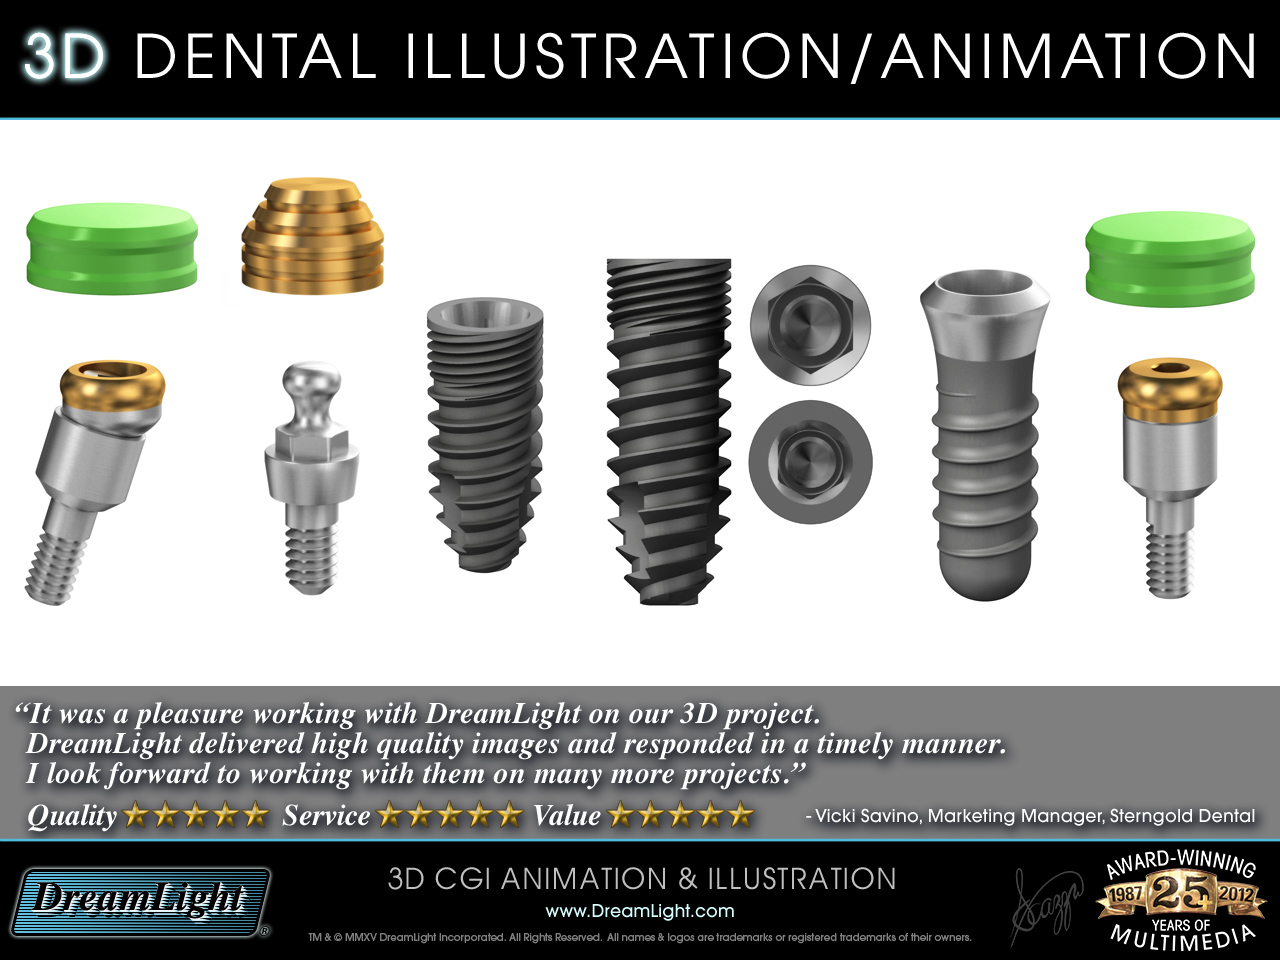 3D Dental Device Product Illustration and Animation - DreamLight.com ...